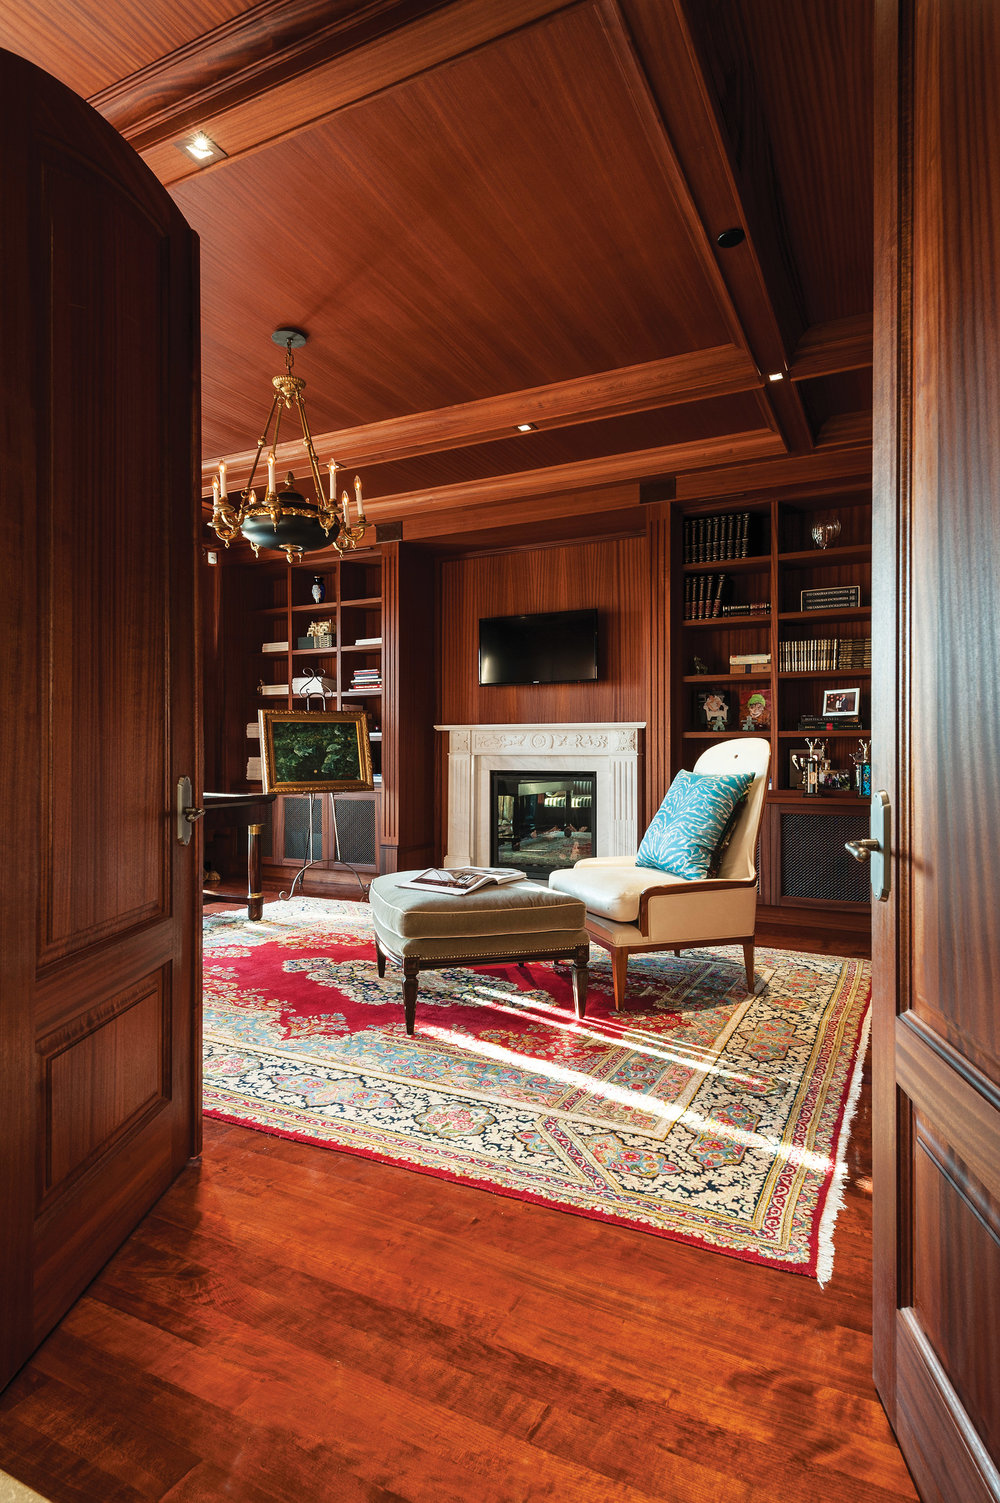 Library walls and coffered ceiling are sheathed in mahogany panels. Furnishings include Le Moulin Chair in bone leather and an Italian Louis XVI chandelier.